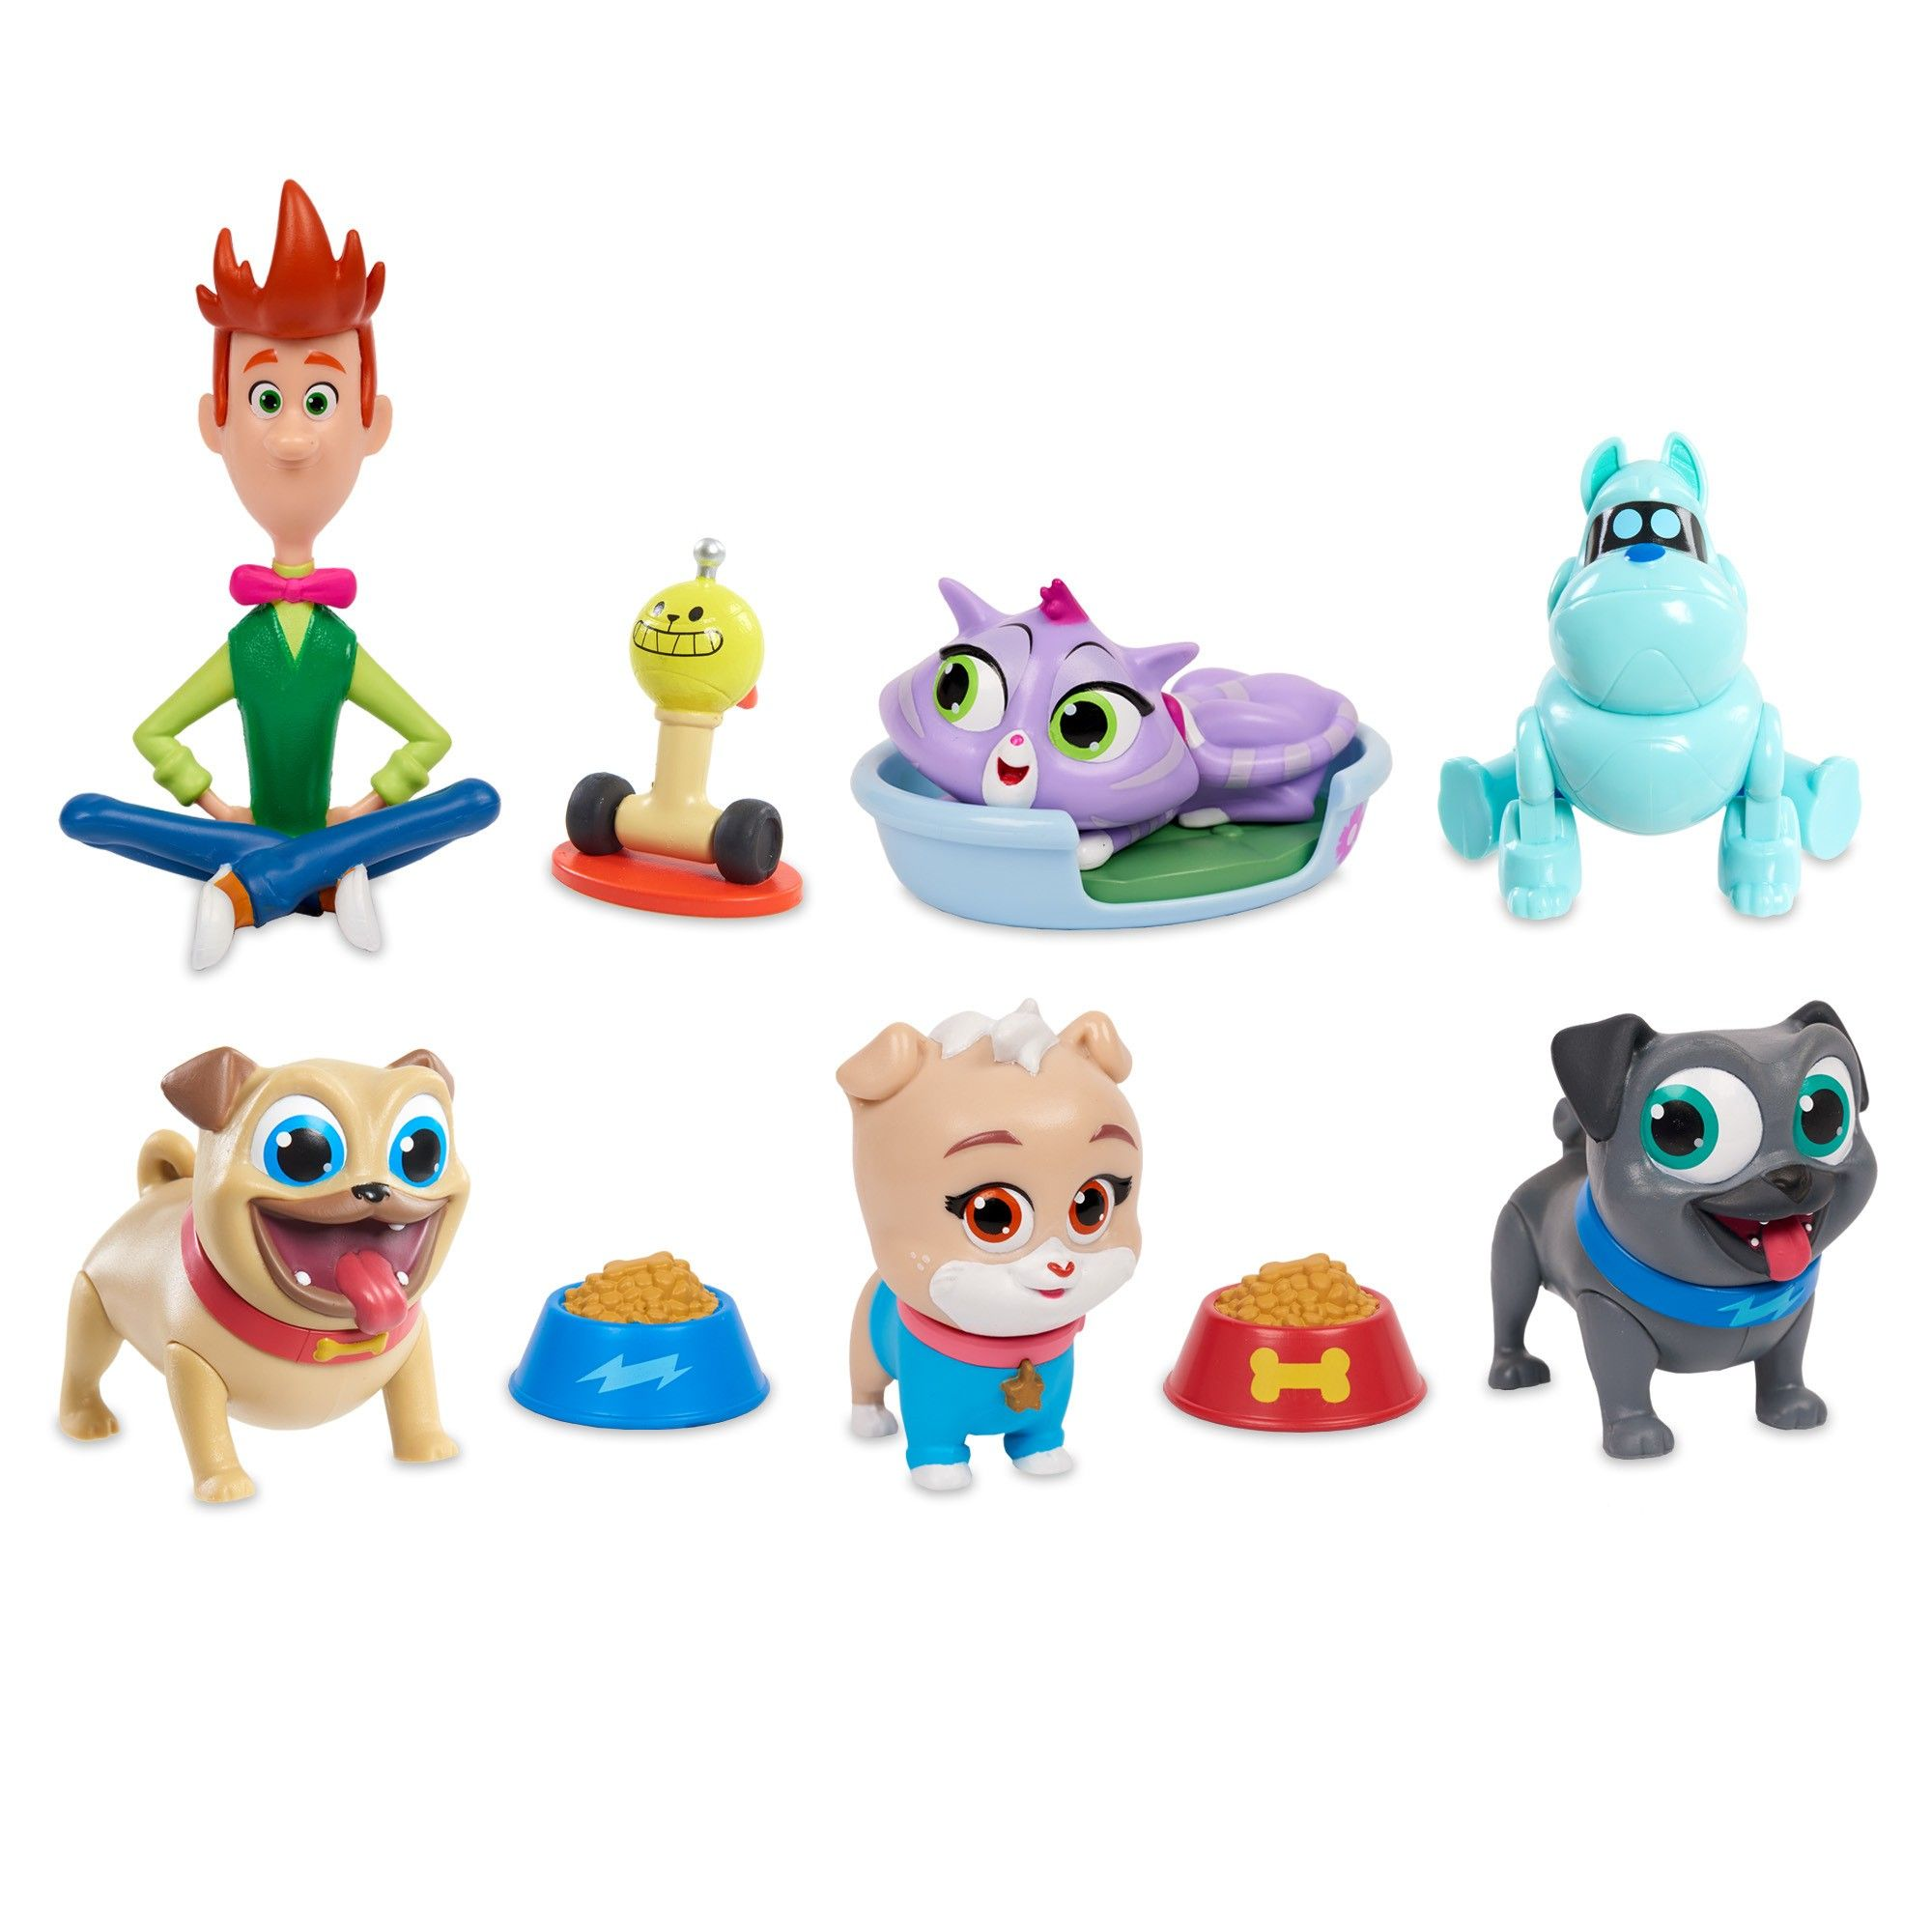 Puppy Dog Pals Deluxe Friend Set 10pc Dogs Puppies Disney